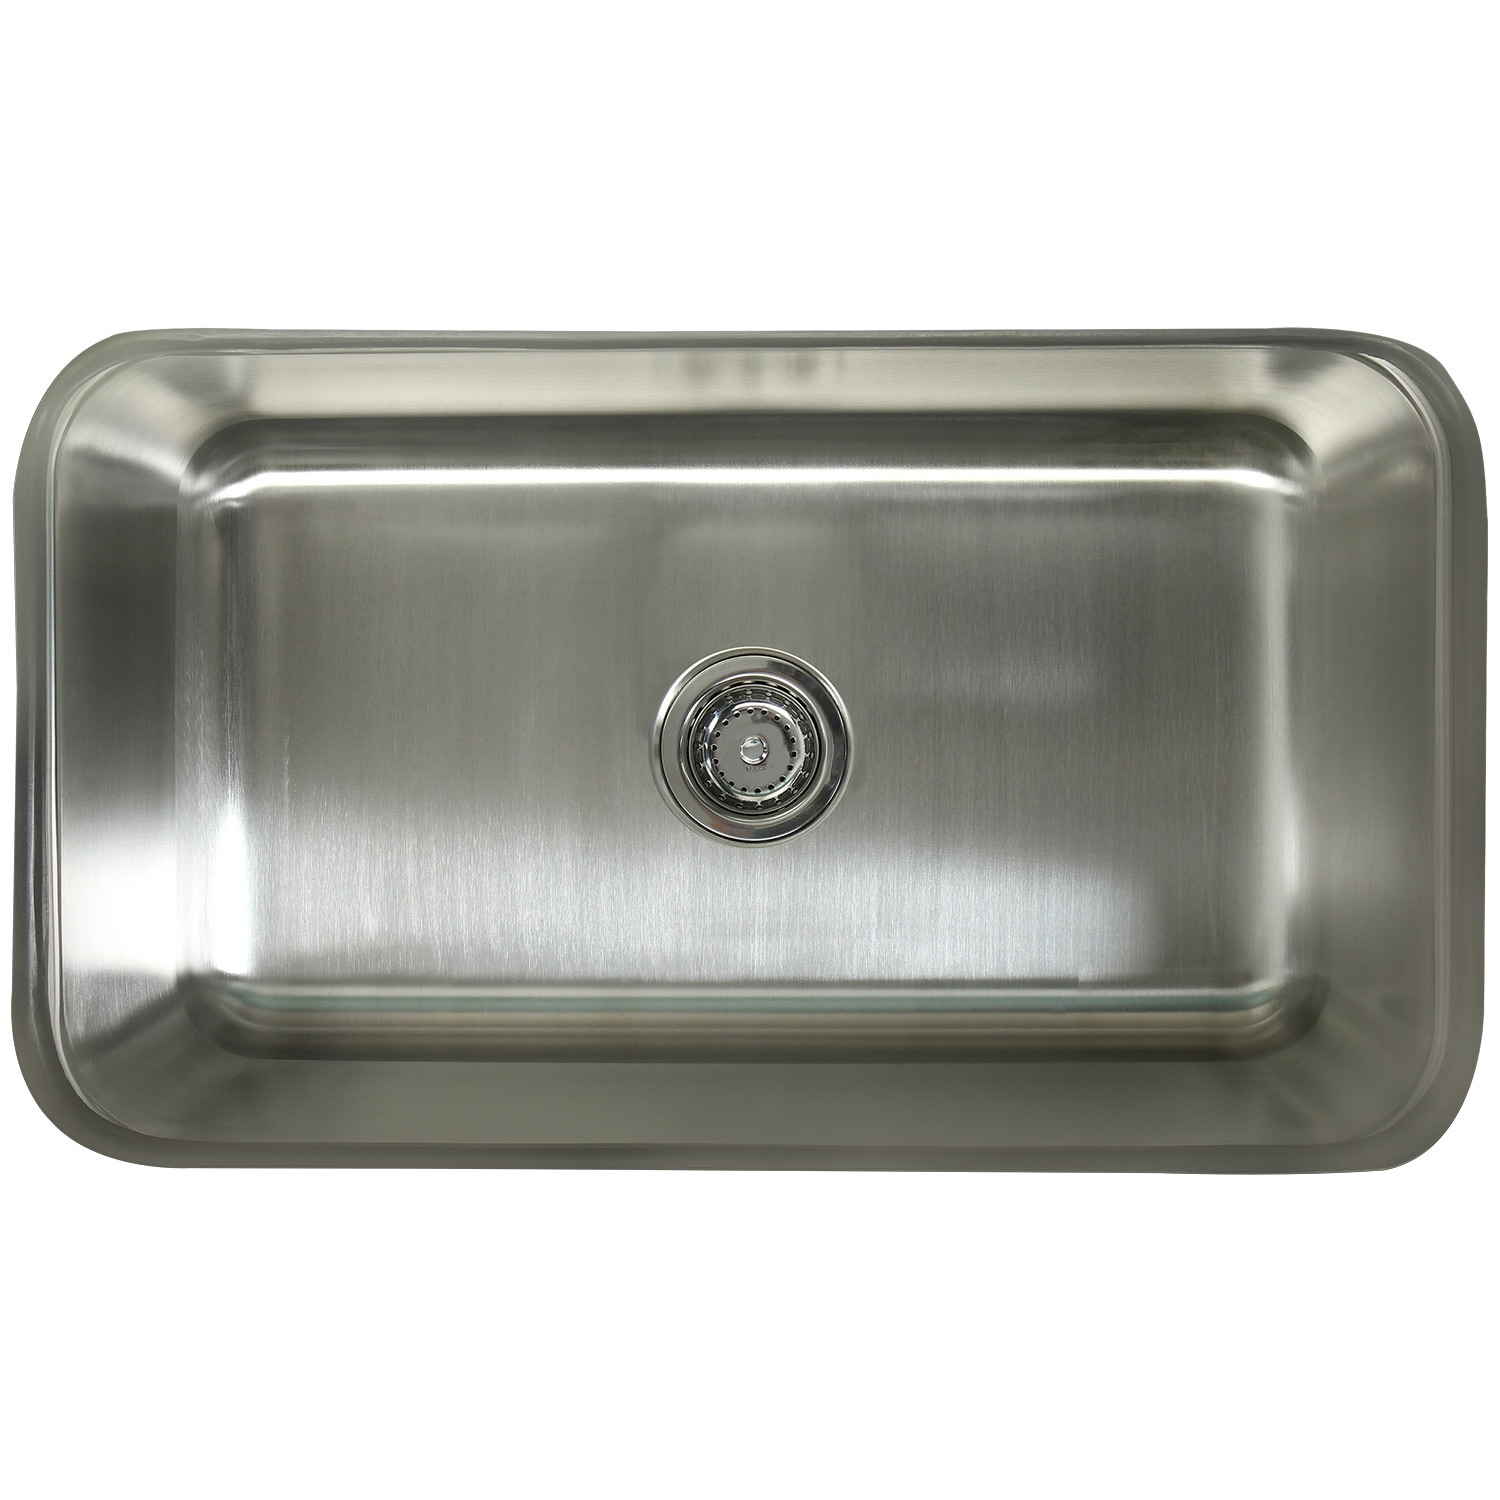 stainless steel undermount kitchen sinks lowes delta faucets shop single bowl 30 inch sink